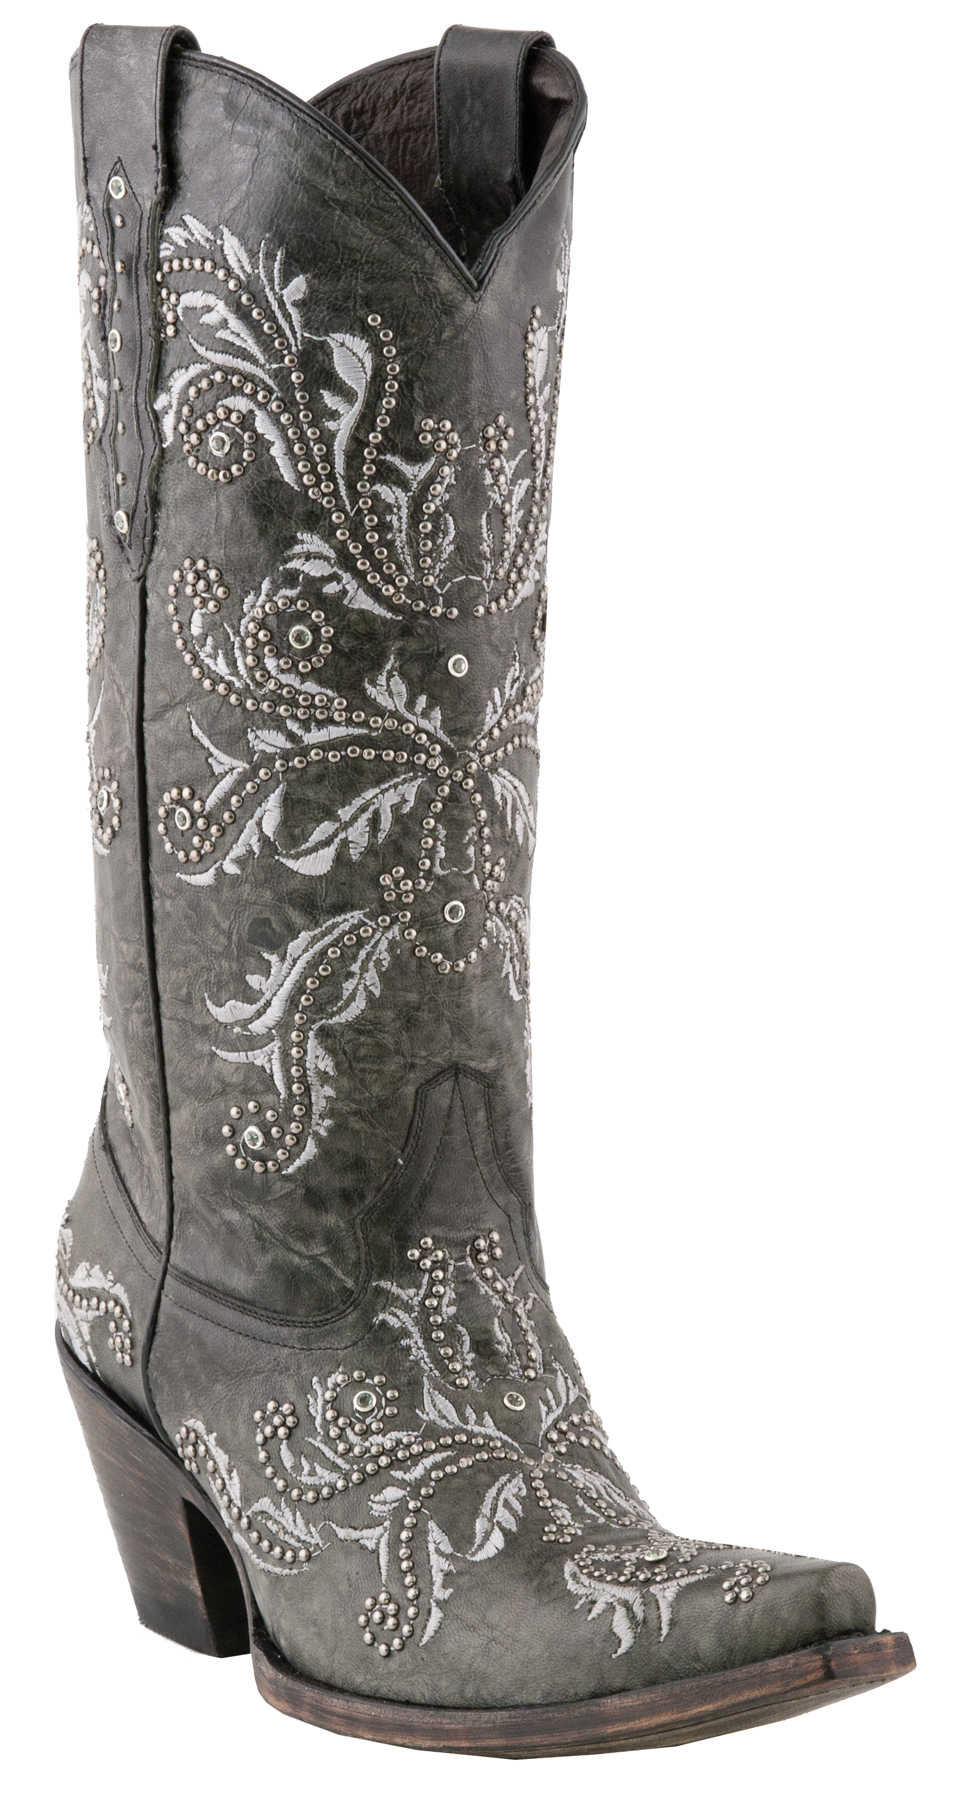 *NEW* Lucchese Since 1883 Ladies Studded Angelina Grey Oklahoma Calf Leather Cowgirl Boots M5717